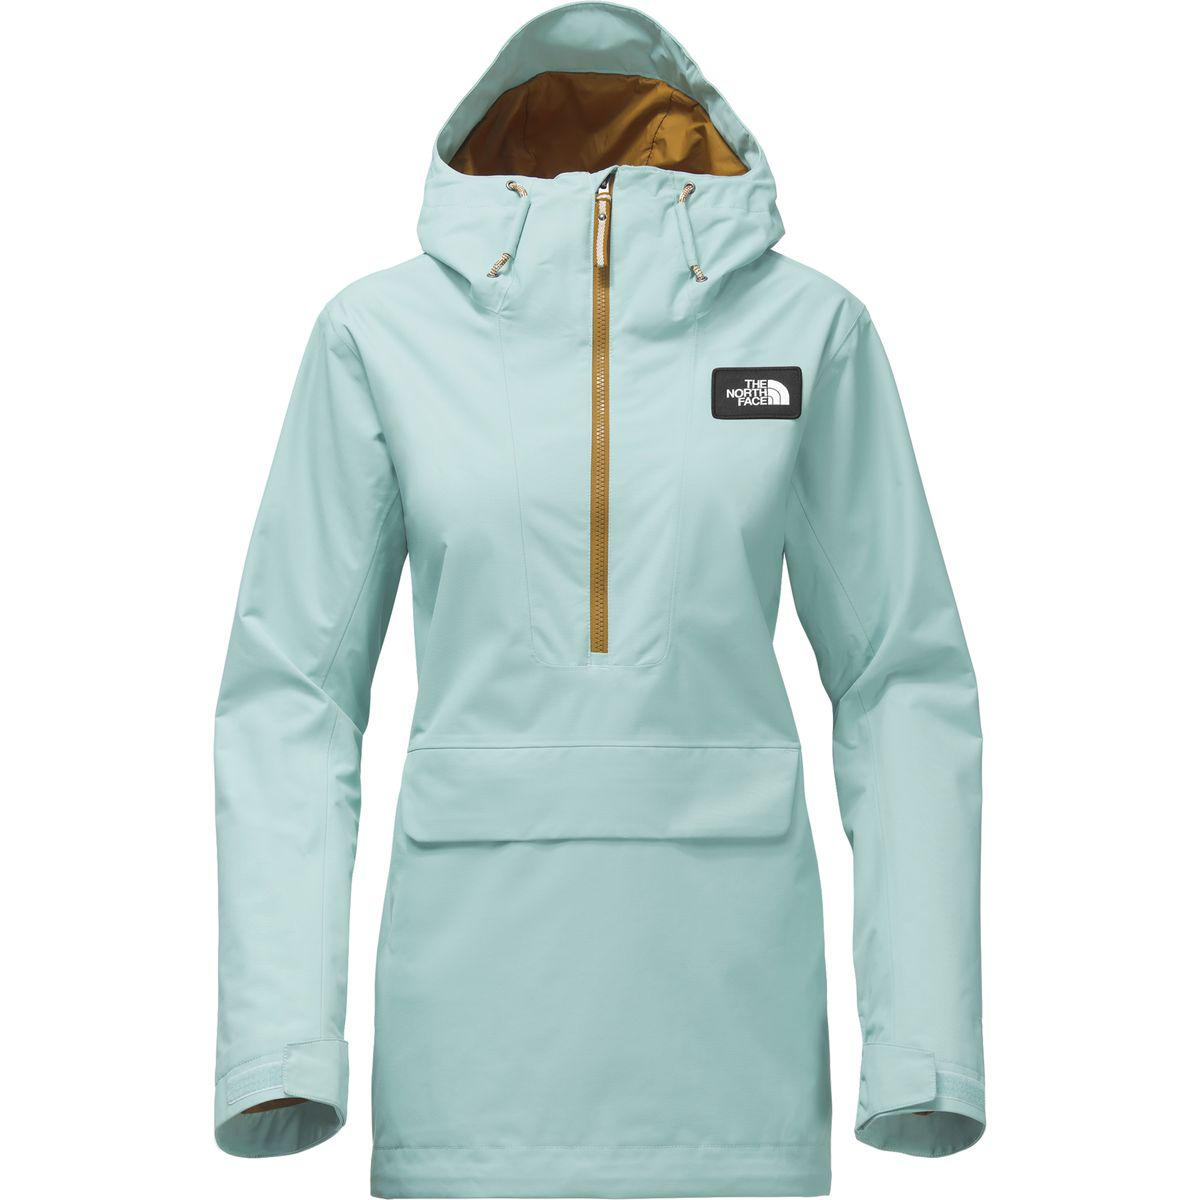 305d63d03 The North Face Blue Tanager Anorak Hooded Jacket